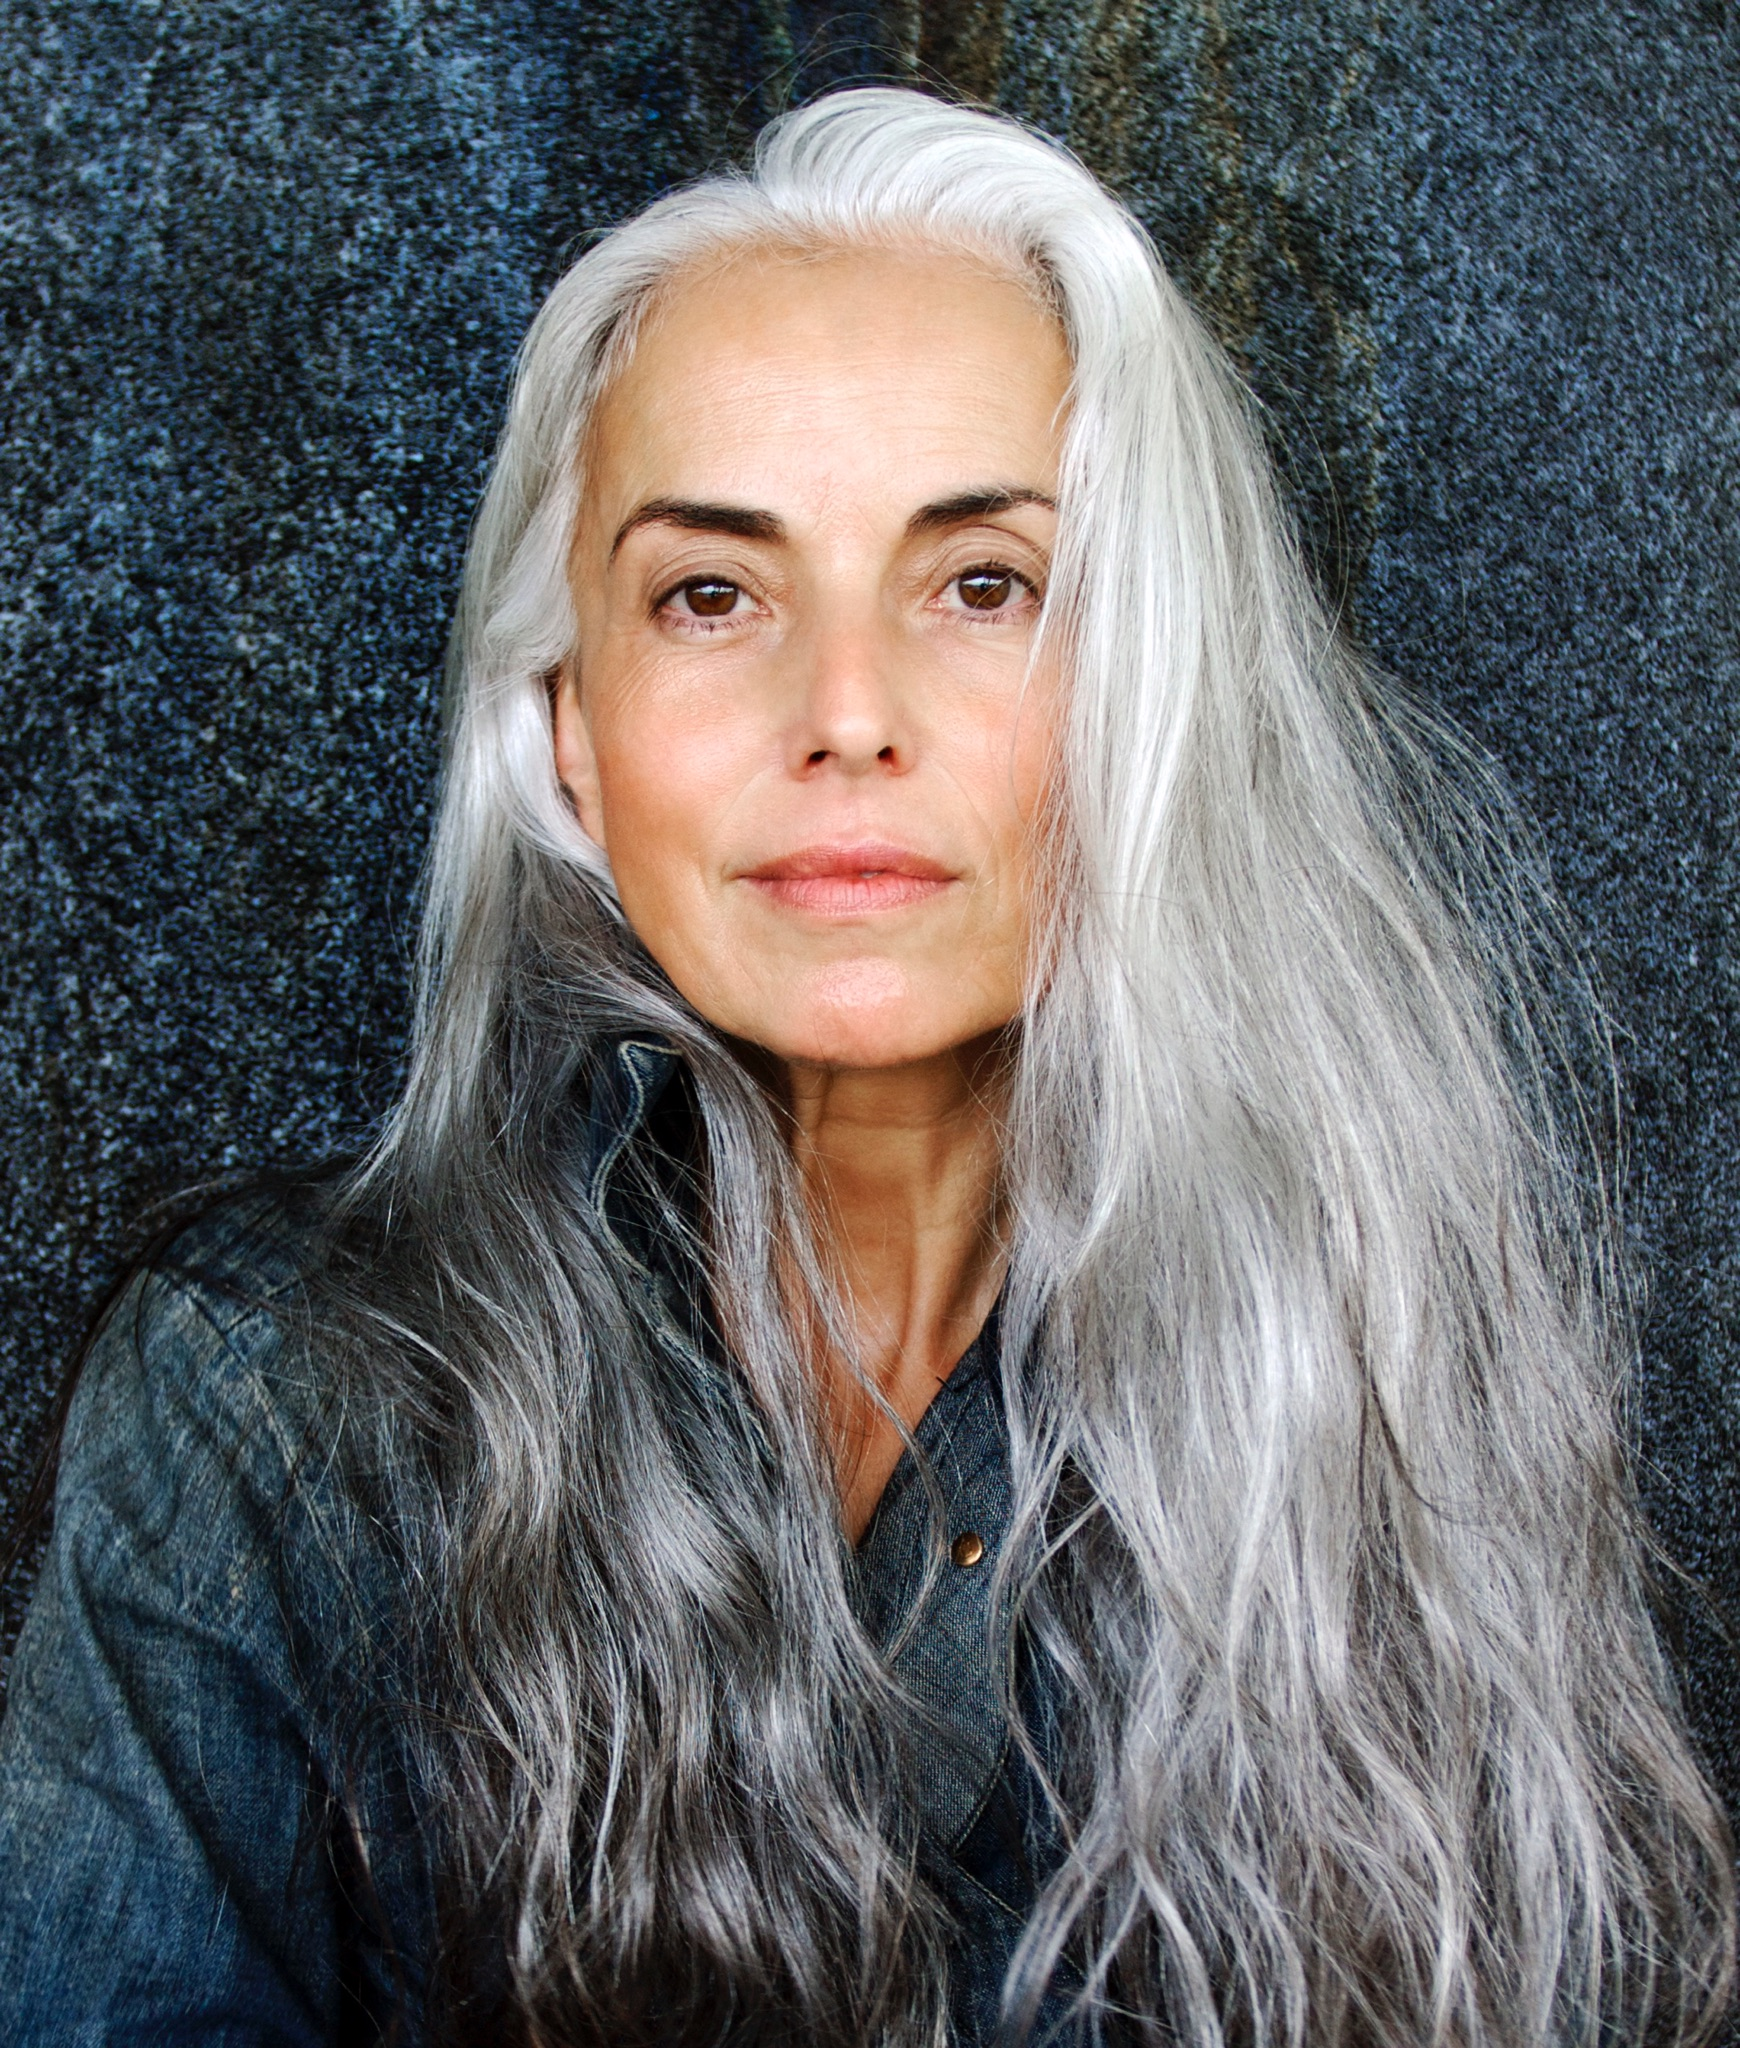 61 Year Old Model Reveals the Secret to Staying Young - Inspired ...